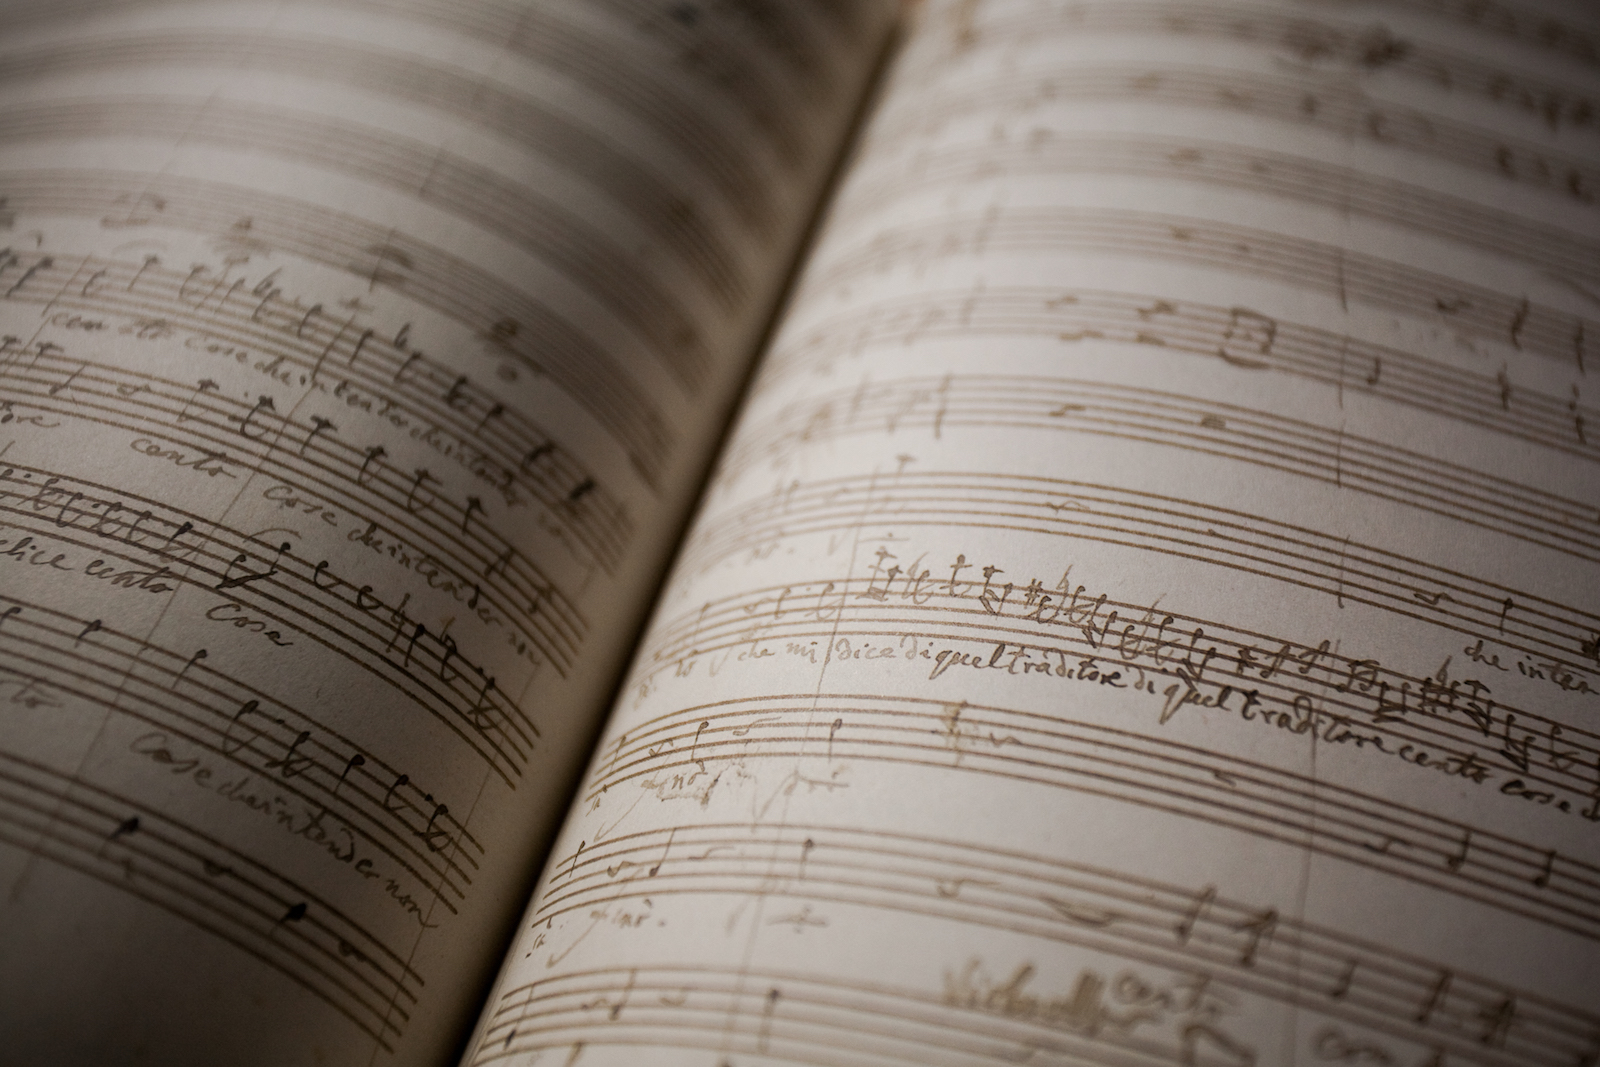 Composer's score for Don Giovanni